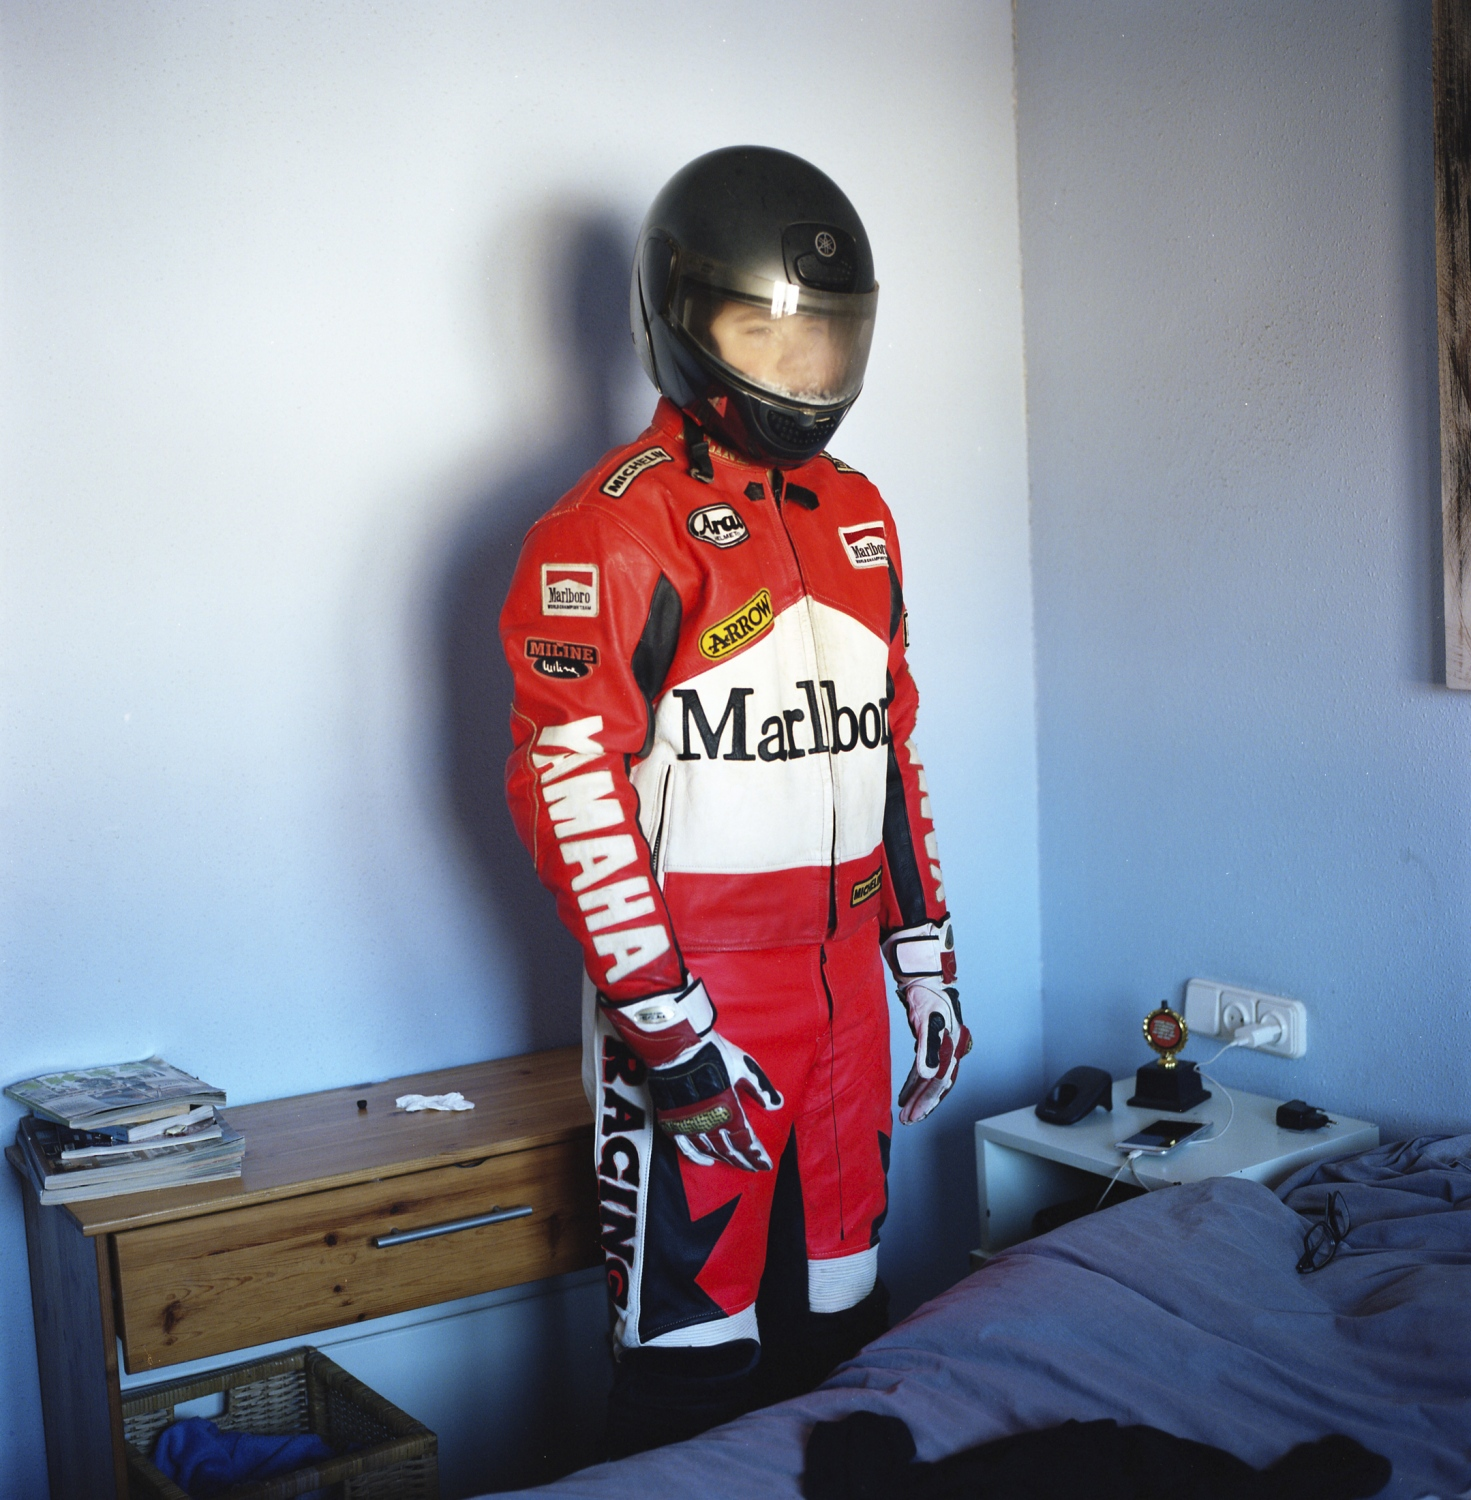 "Jose's fifteen-year-old son, Josep, wears his father's motorcycle test pilot suit in his parent's room. In a past life Josep's father was a test pilot at Catalonia's Montmeló race circuit tasked with racing prototype models around the track before they were deemed safe to use in official races. Like his father, Josep wants to follow in his footsteps to become the eighth generation locksmith in his family. ""As a boy I used to go to work with my dad and see how his work made people feel safe in their homes."" Josep plans to leave school next year in order to work fulltime with his father."